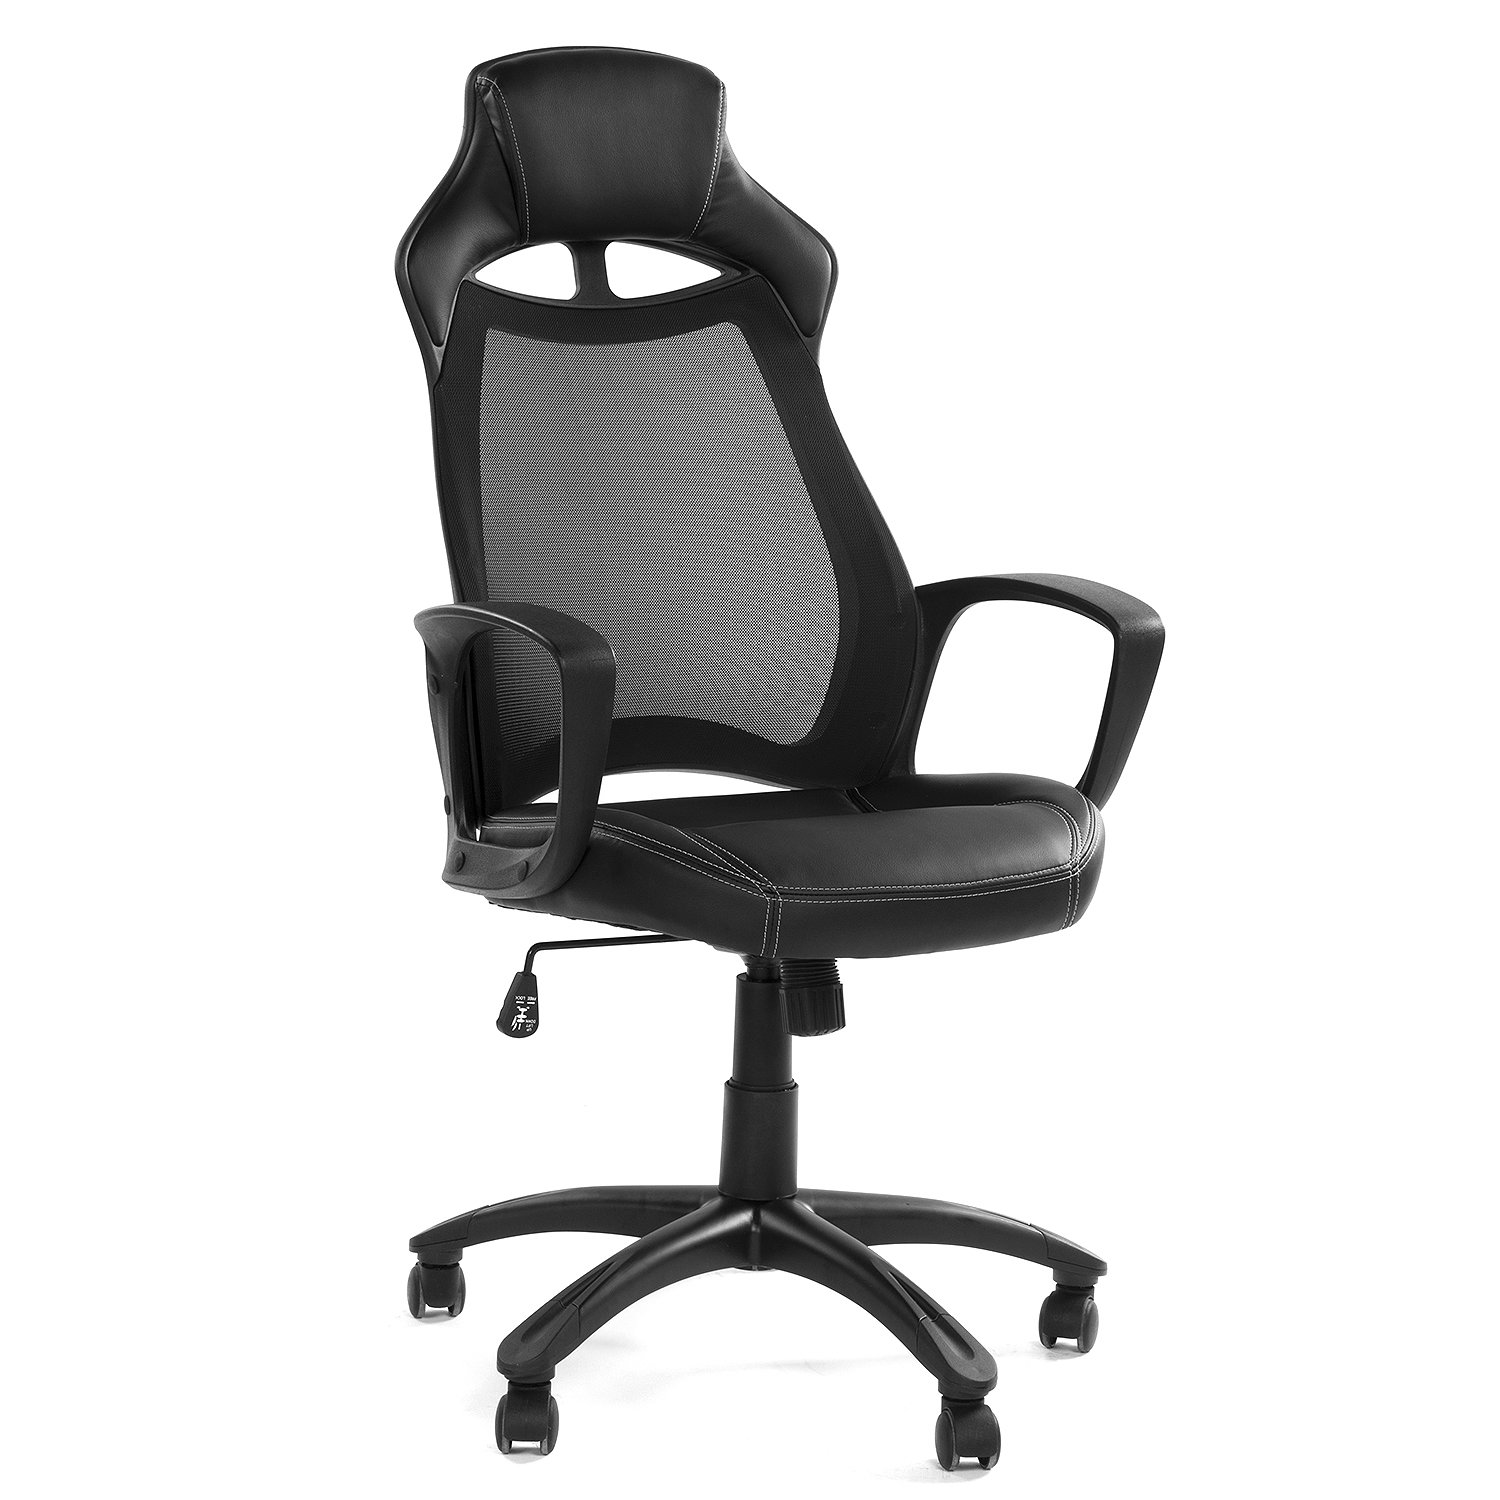 GreenForest Office Chair High Back Desk Chair with Soft PU Leather Seat Base and Mesh Back Executive Swivel Chair with Headrest, Black